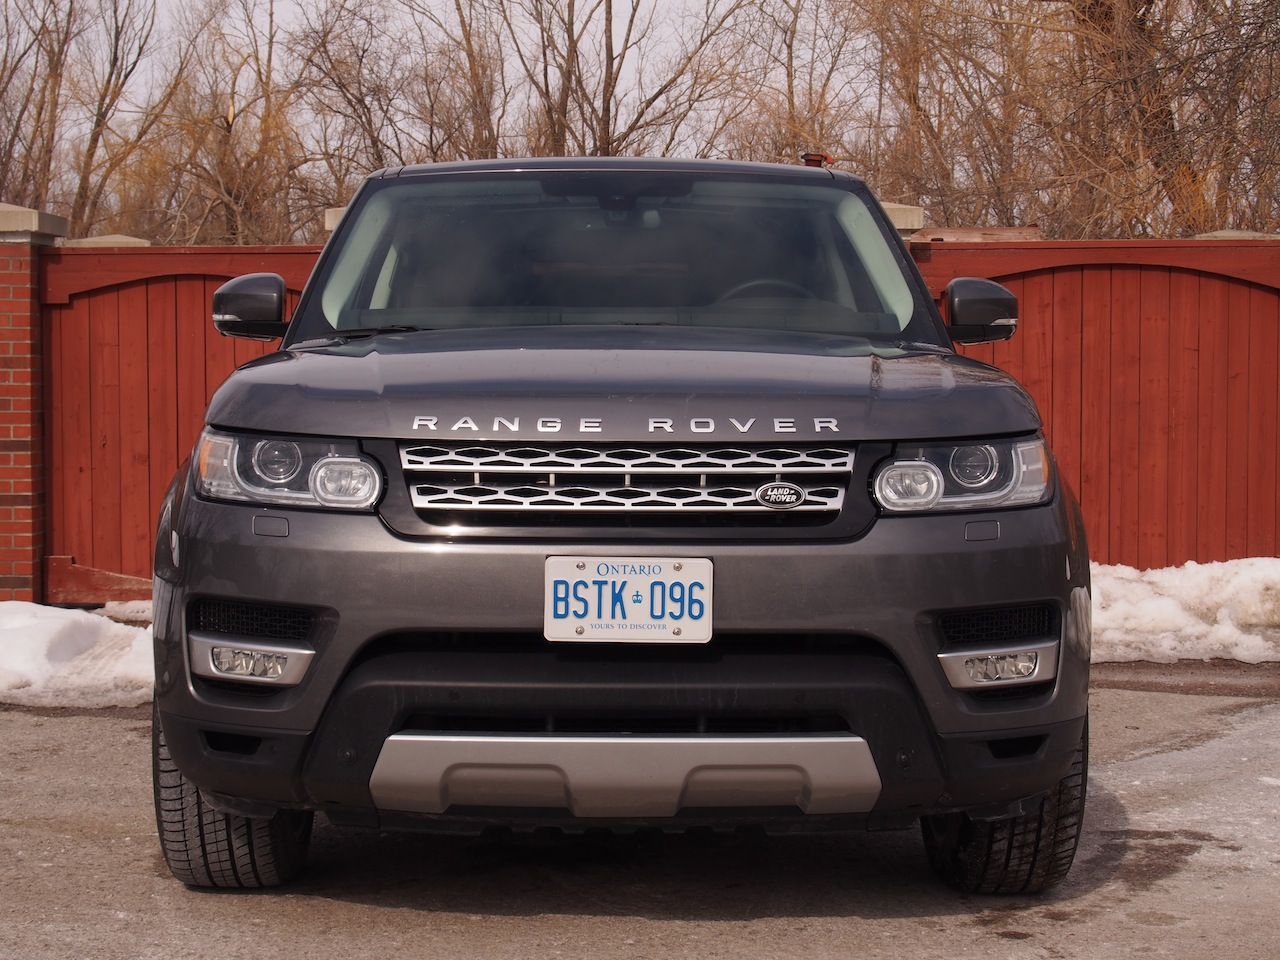 2014 range rover sport v6 hse cars photos test drives. Black Bedroom Furniture Sets. Home Design Ideas